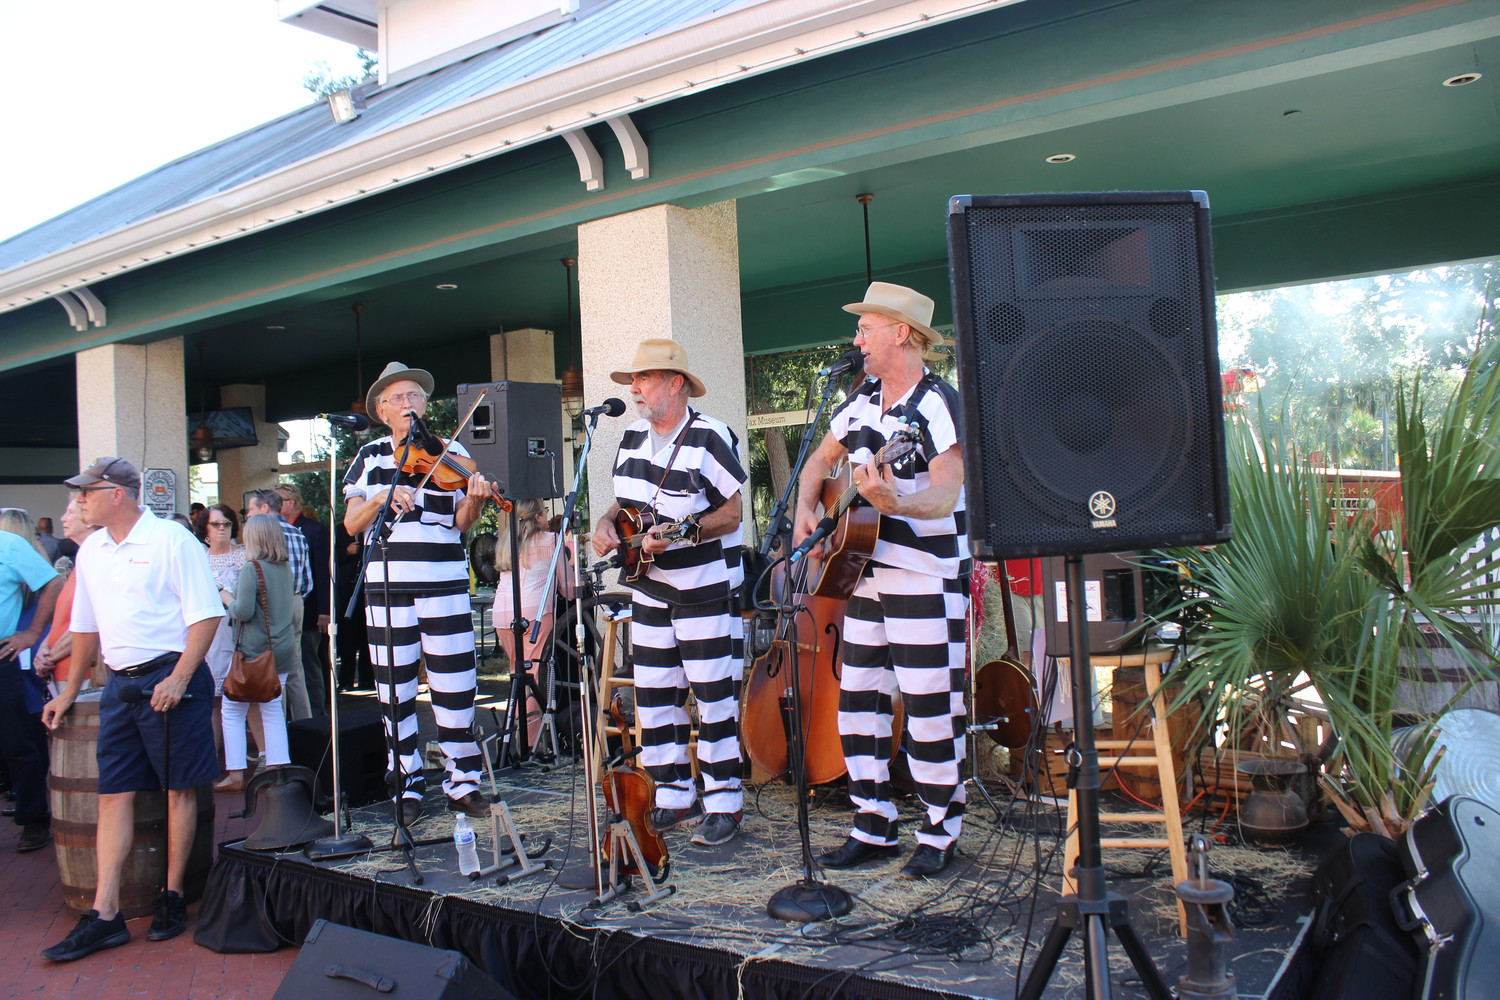 Local group Ball and Chain Gang provides entertainment at the event.